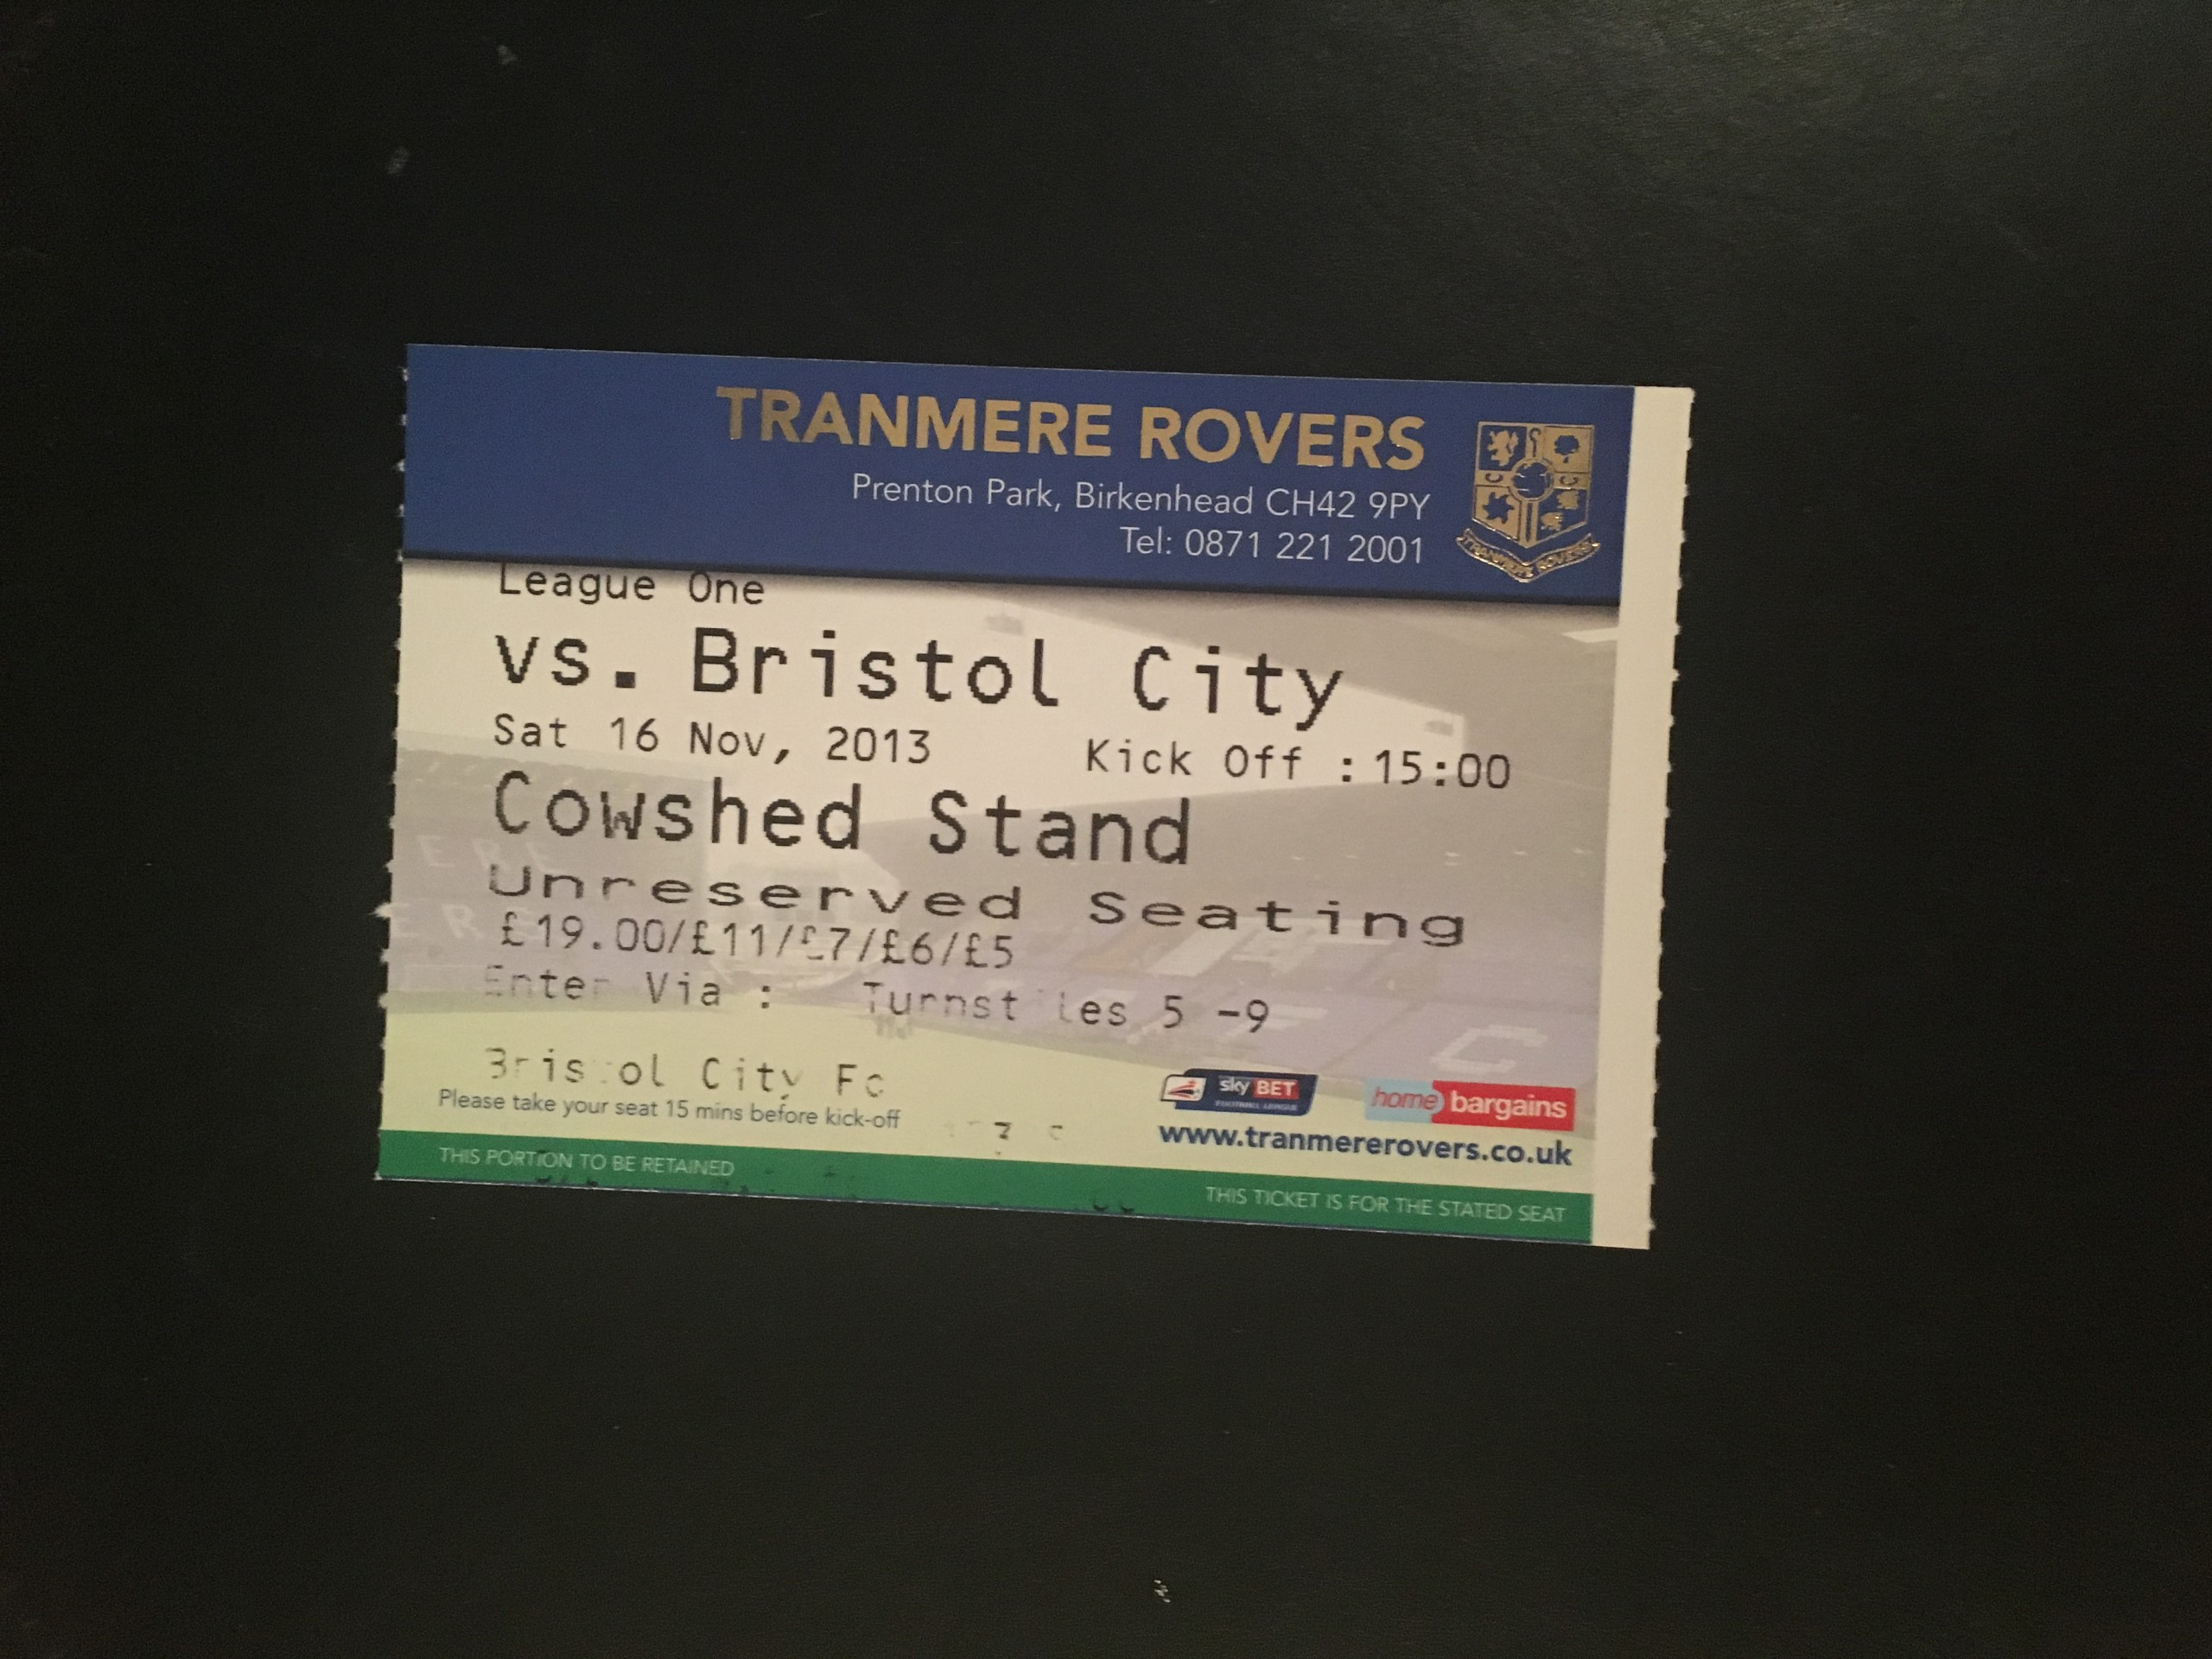 Tranmere Rovers v Bristol City 16-11-2013 Ticket